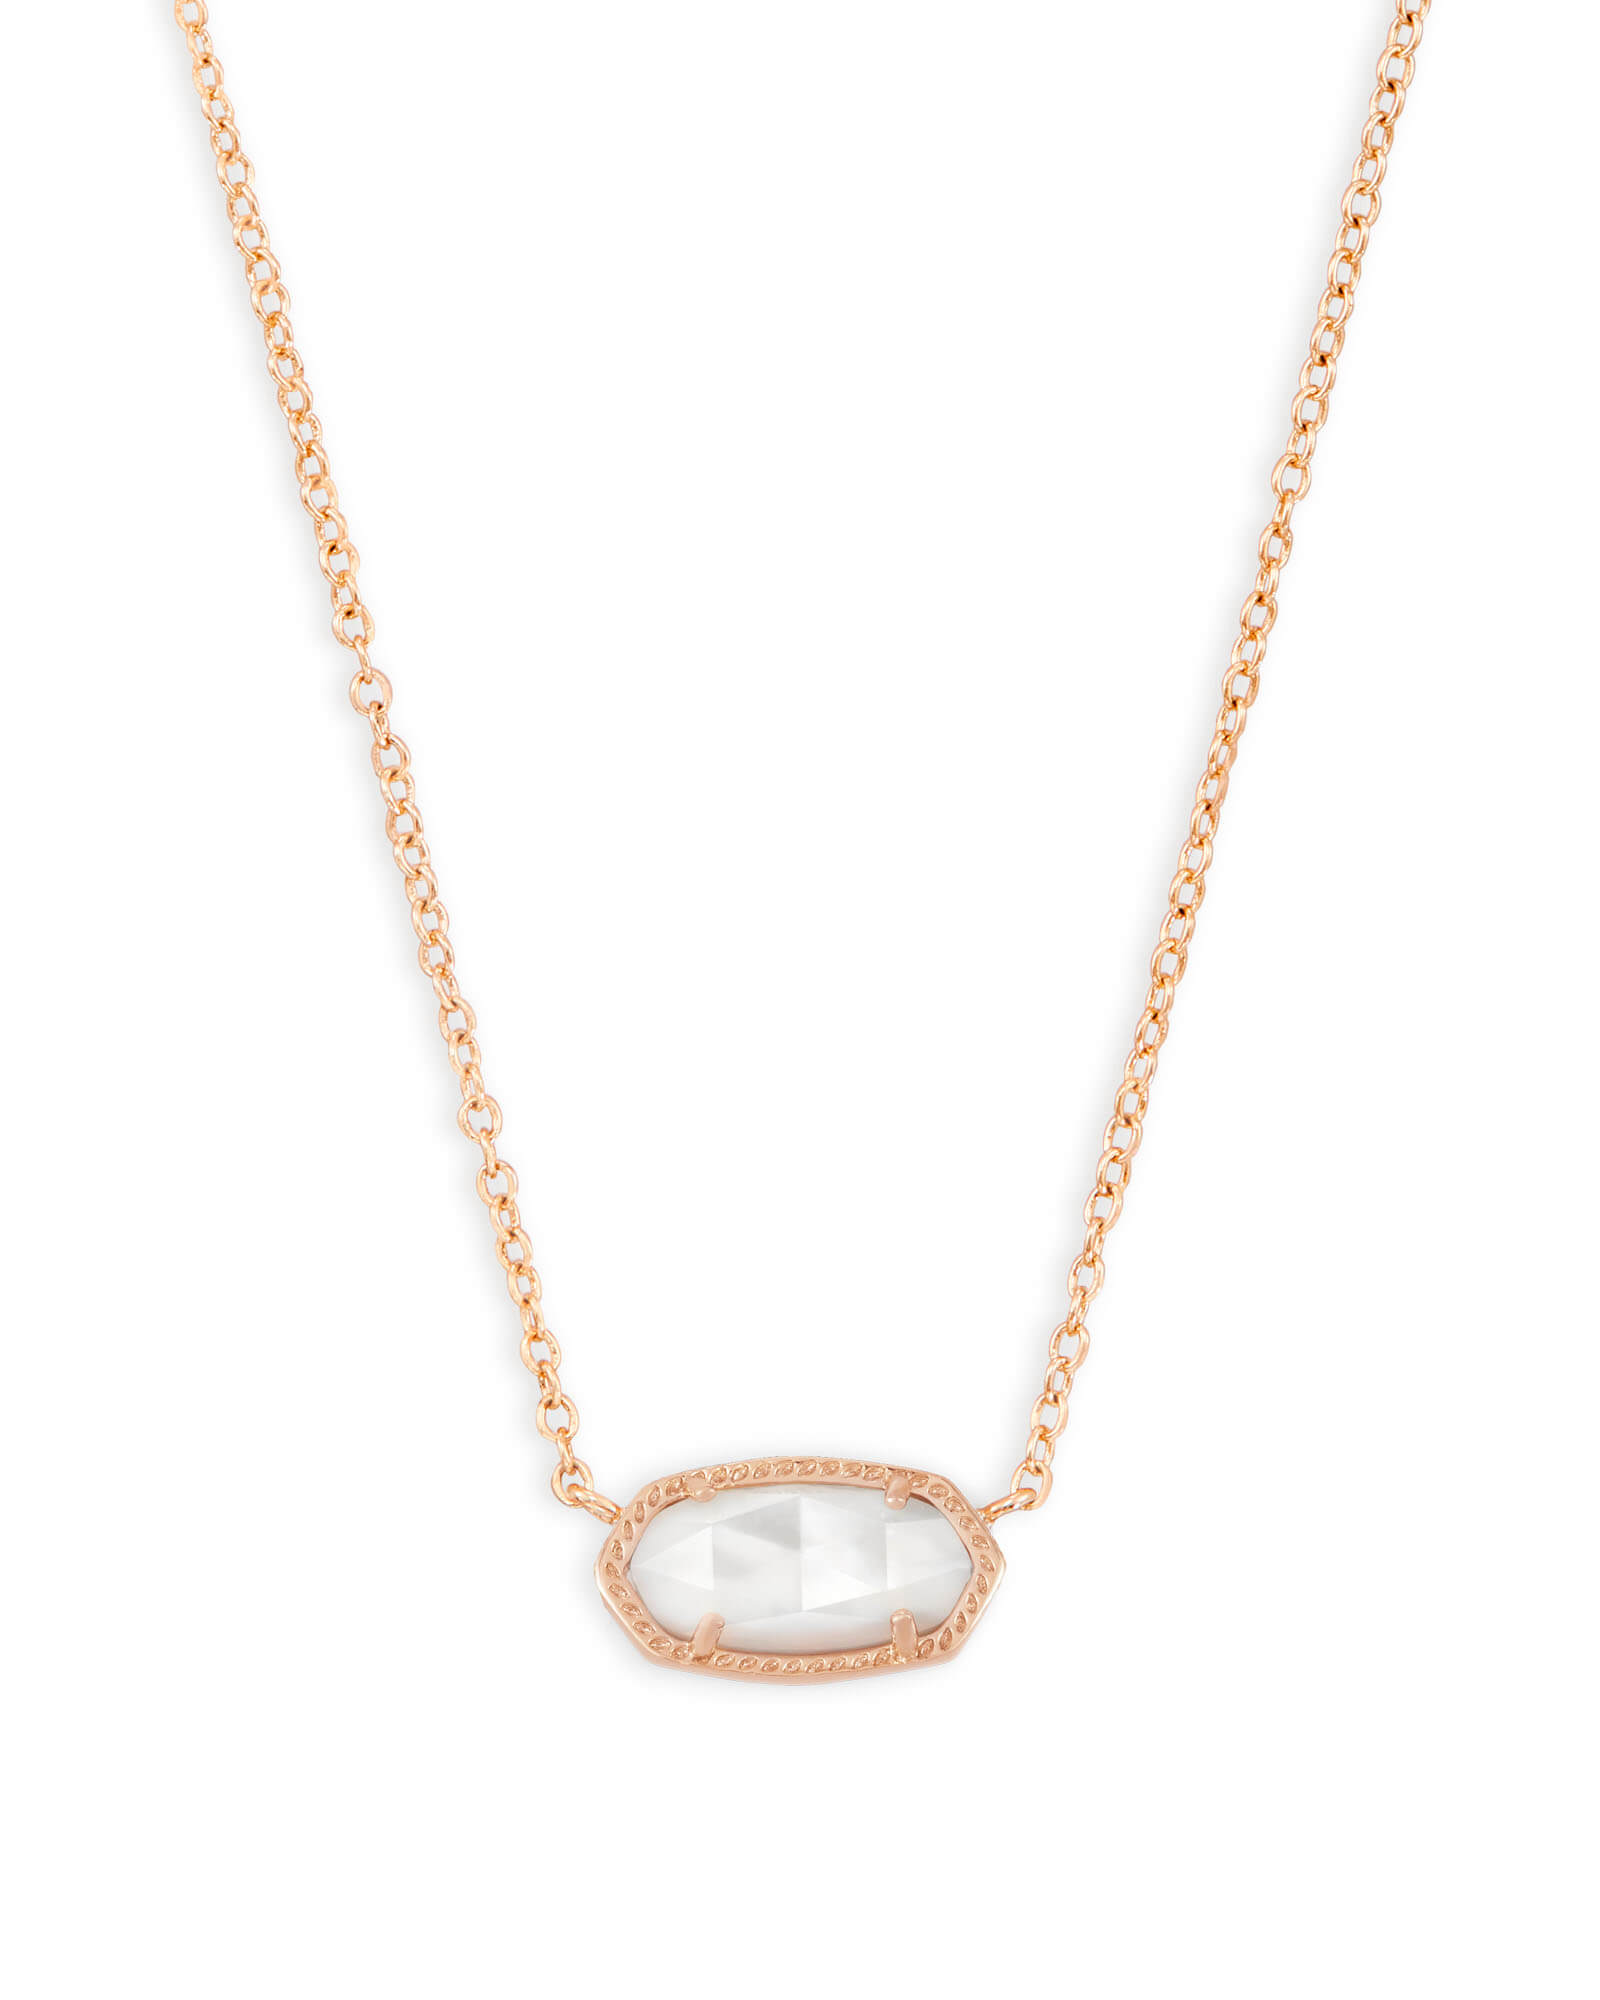 Elisa rose gold pendant necklace ivory pearl kendra scott elisa rose gold pendant necklace in ivory pearl aloadofball Image collections